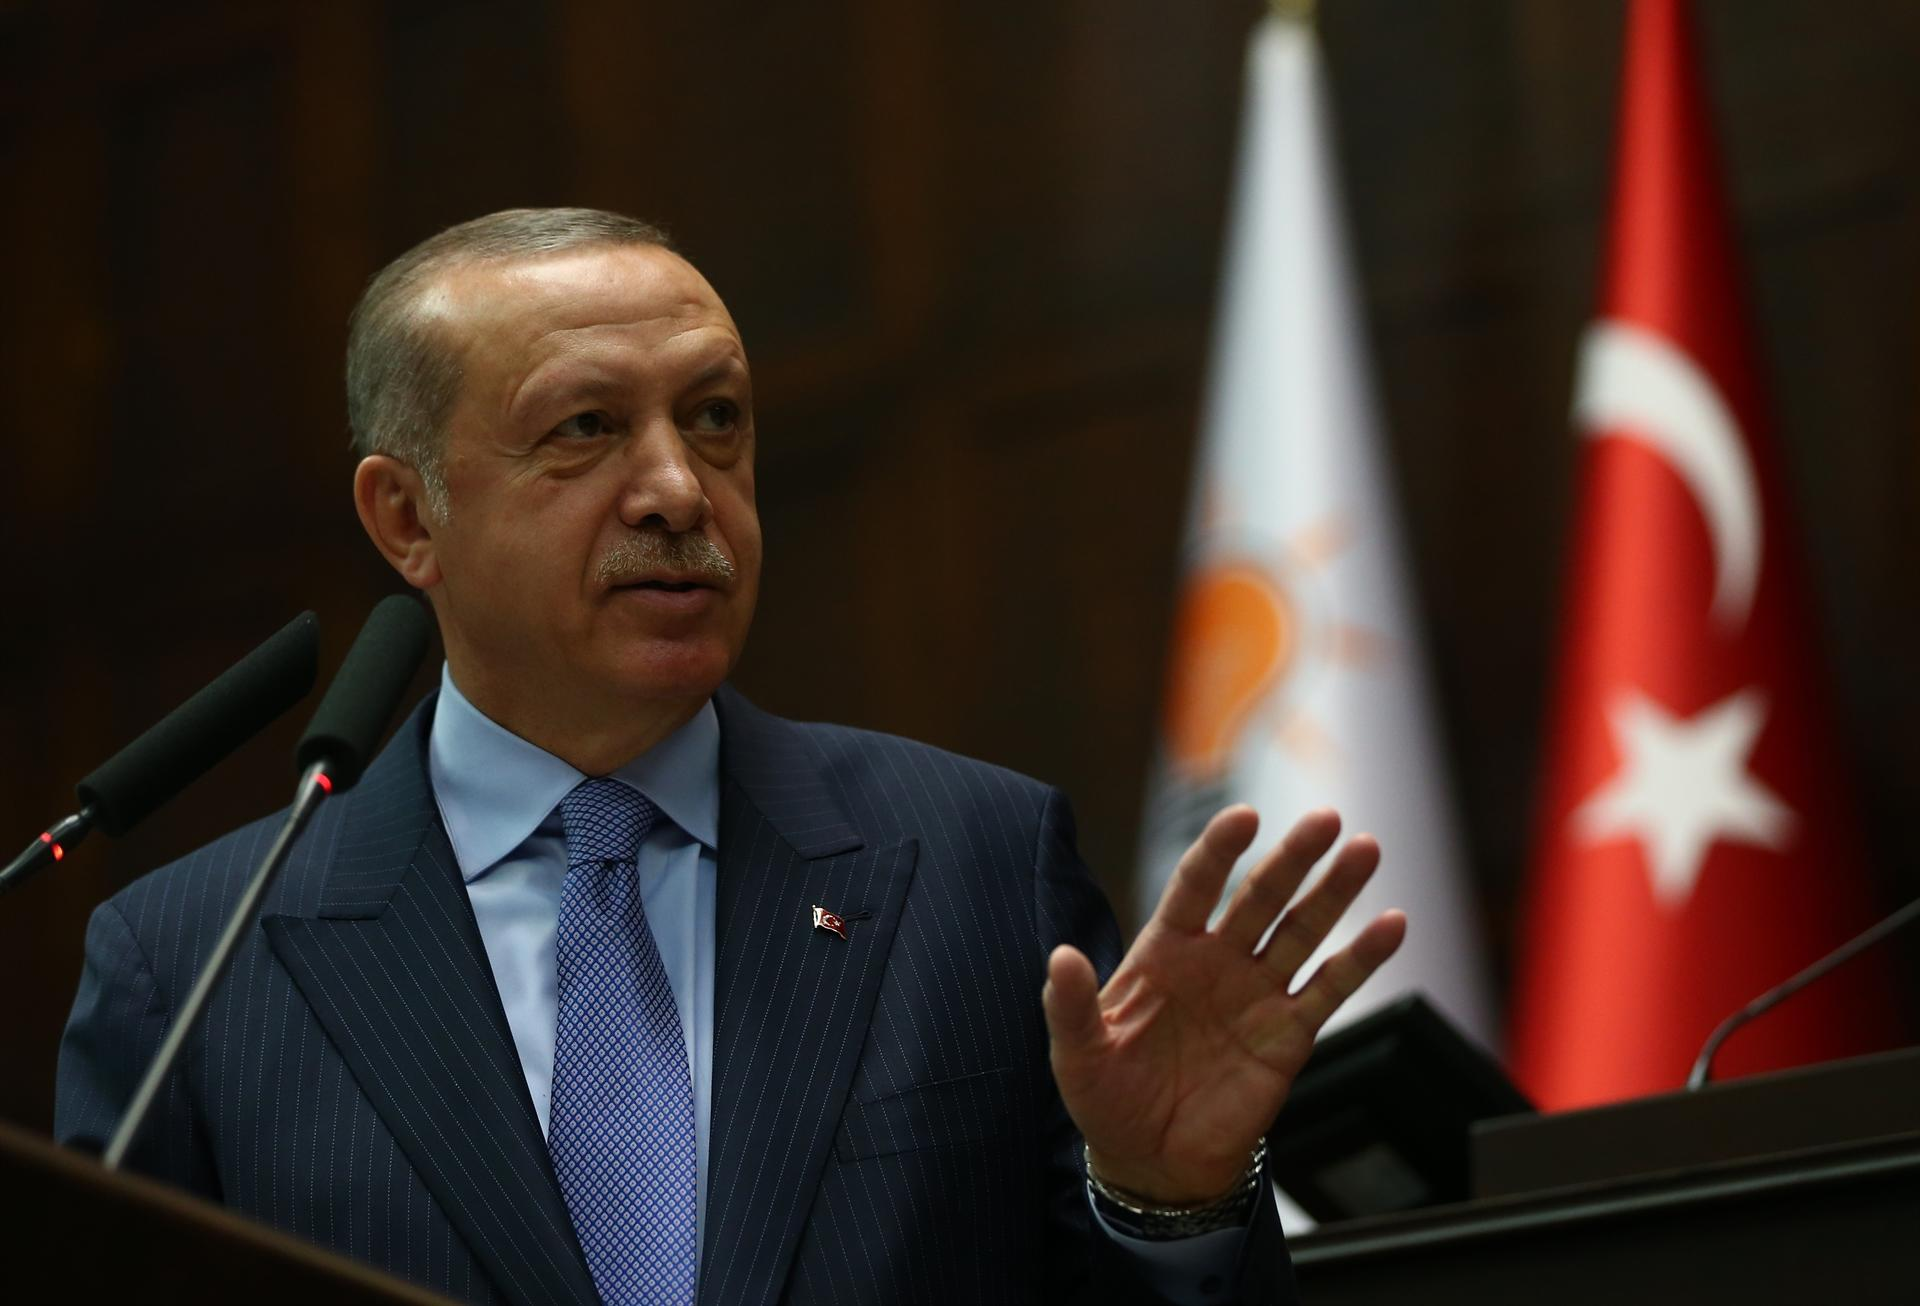 Erdogan 'returns' to the opening of military files of 1915